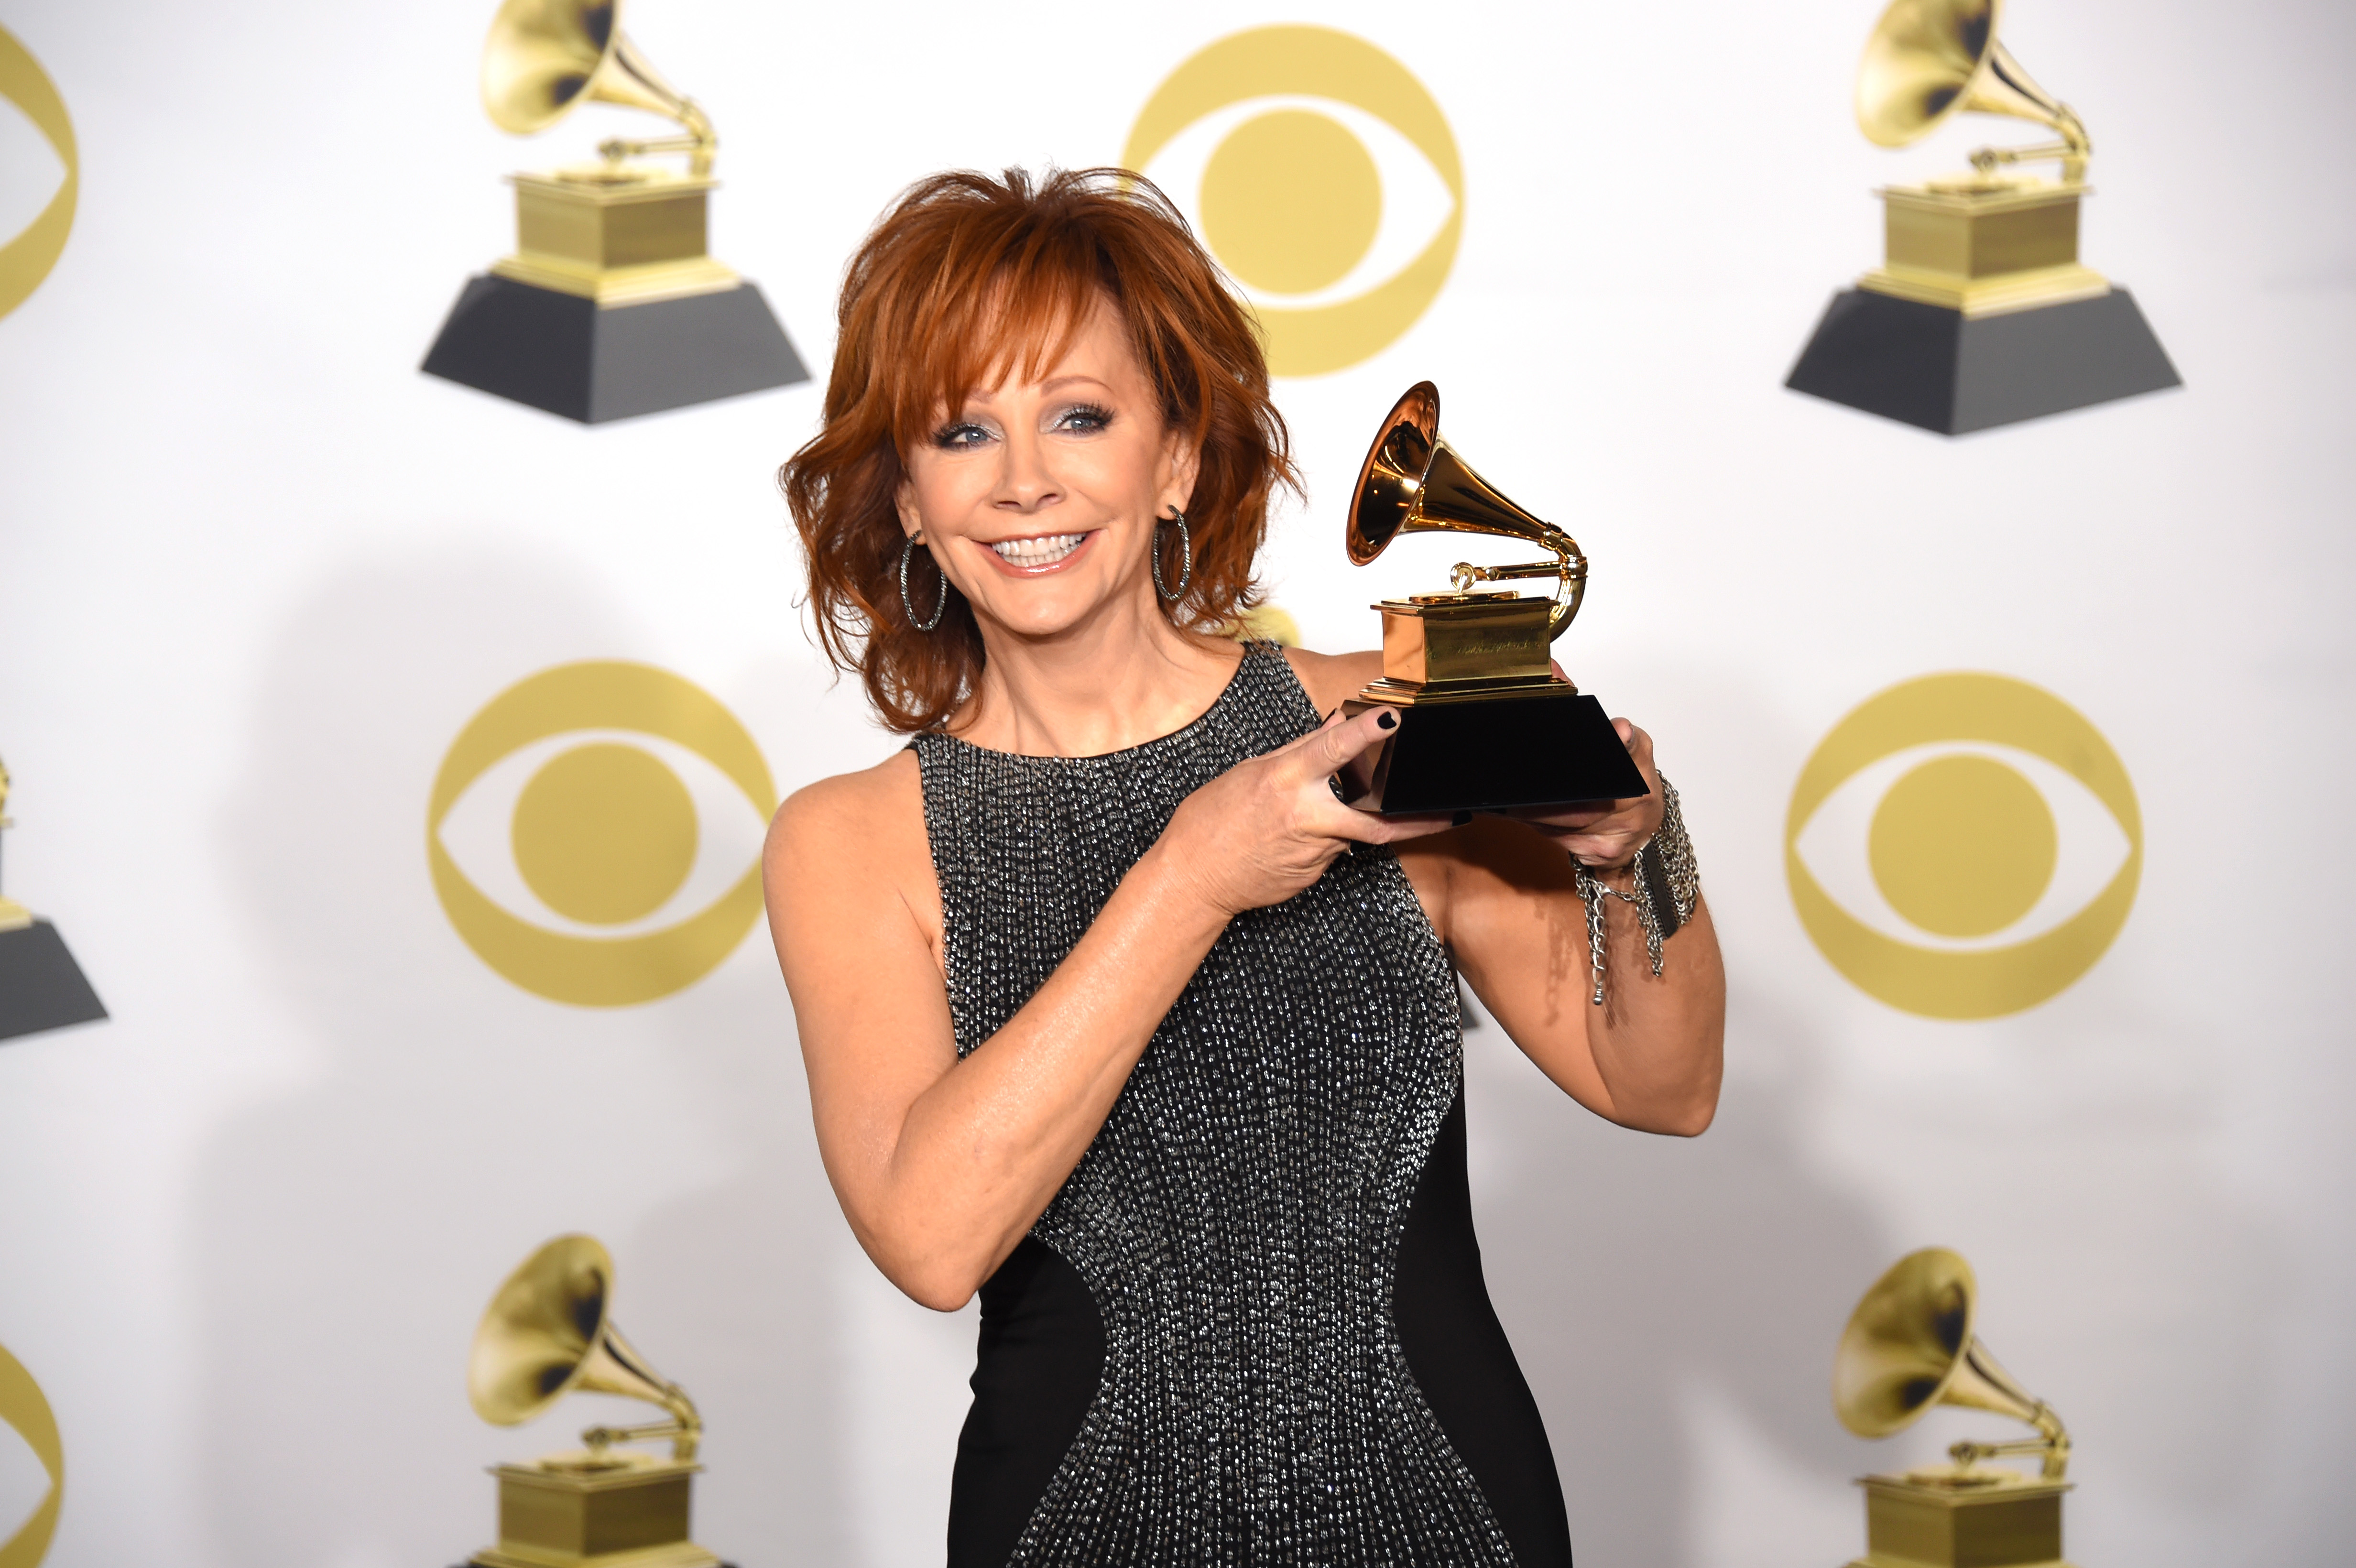 Reba-McEntire-Wins-Her-Third-Grammy-After-20-Years-Wears-A-White-Flower-To-Support-Times-Up